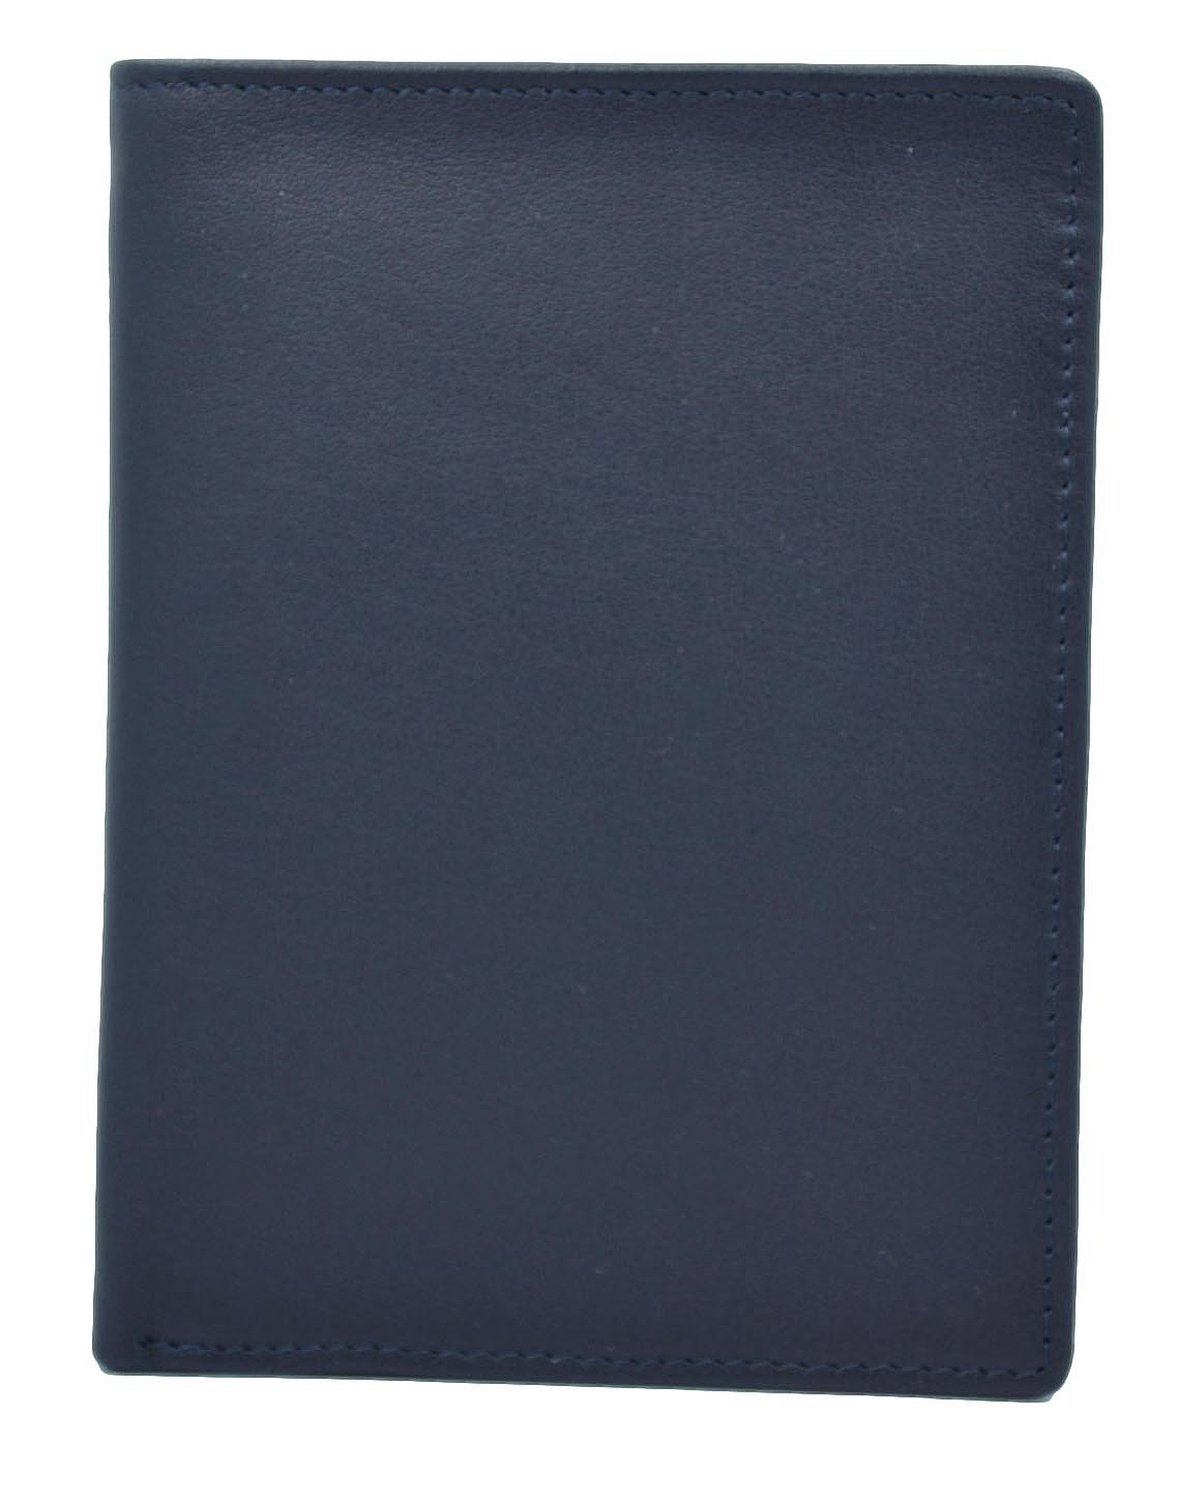 Royce Leather RFID Blocking Bifold Passport Currency Travel Wallet, Blue by Royce Leather